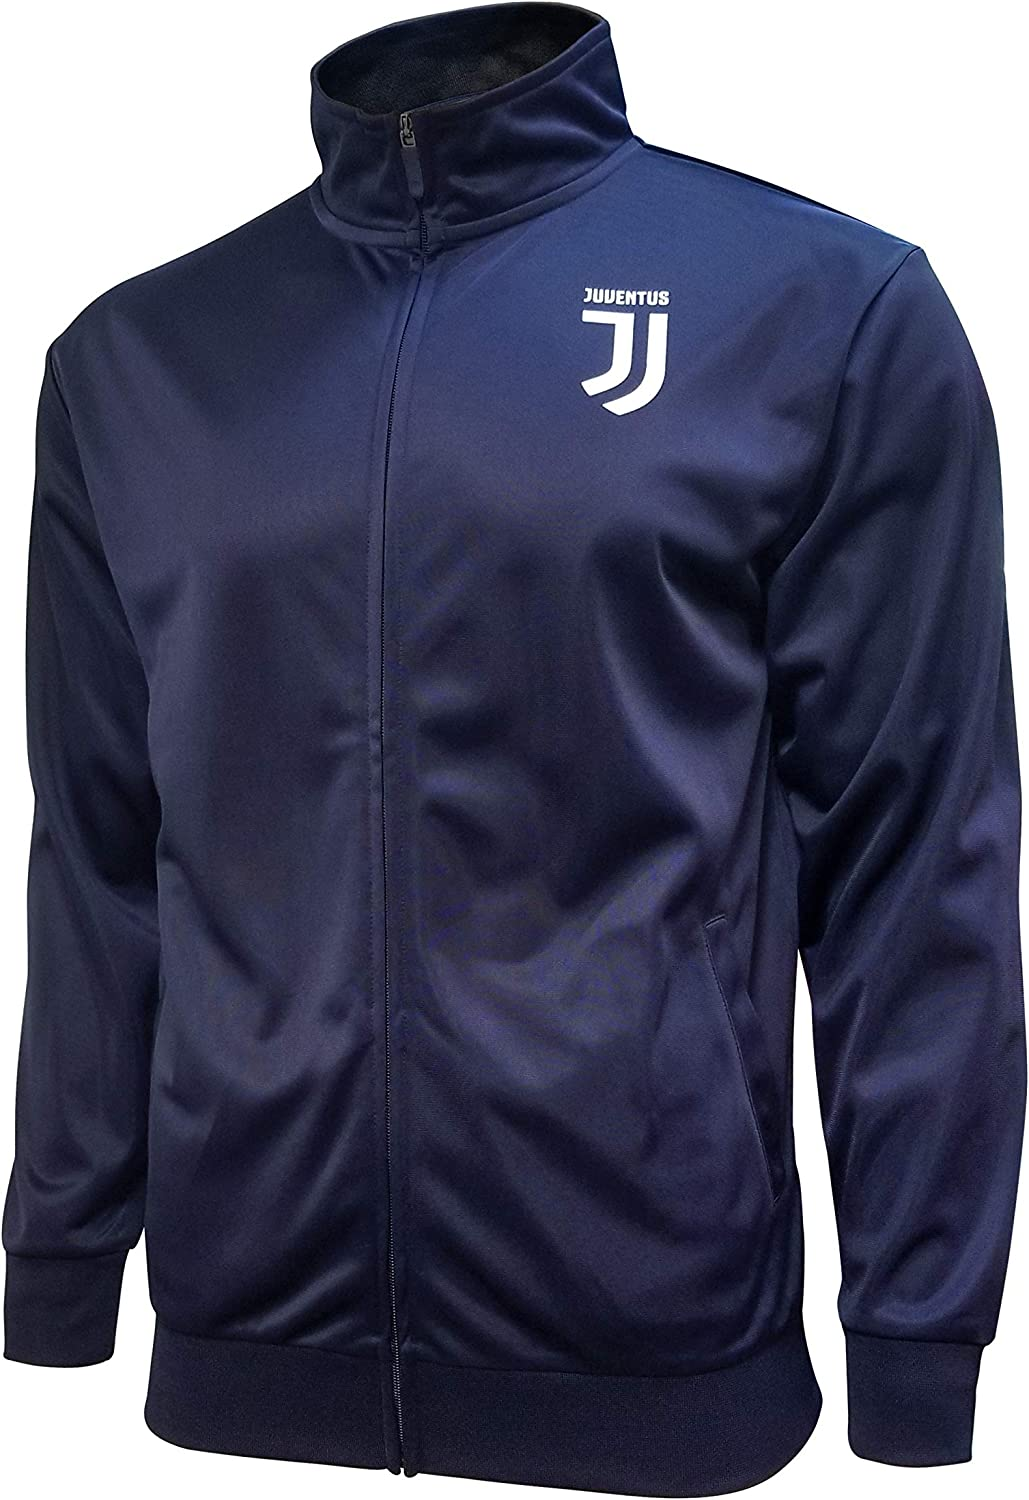 Icon Sports Juventus F.C. Adult Full Zip Track Jackets